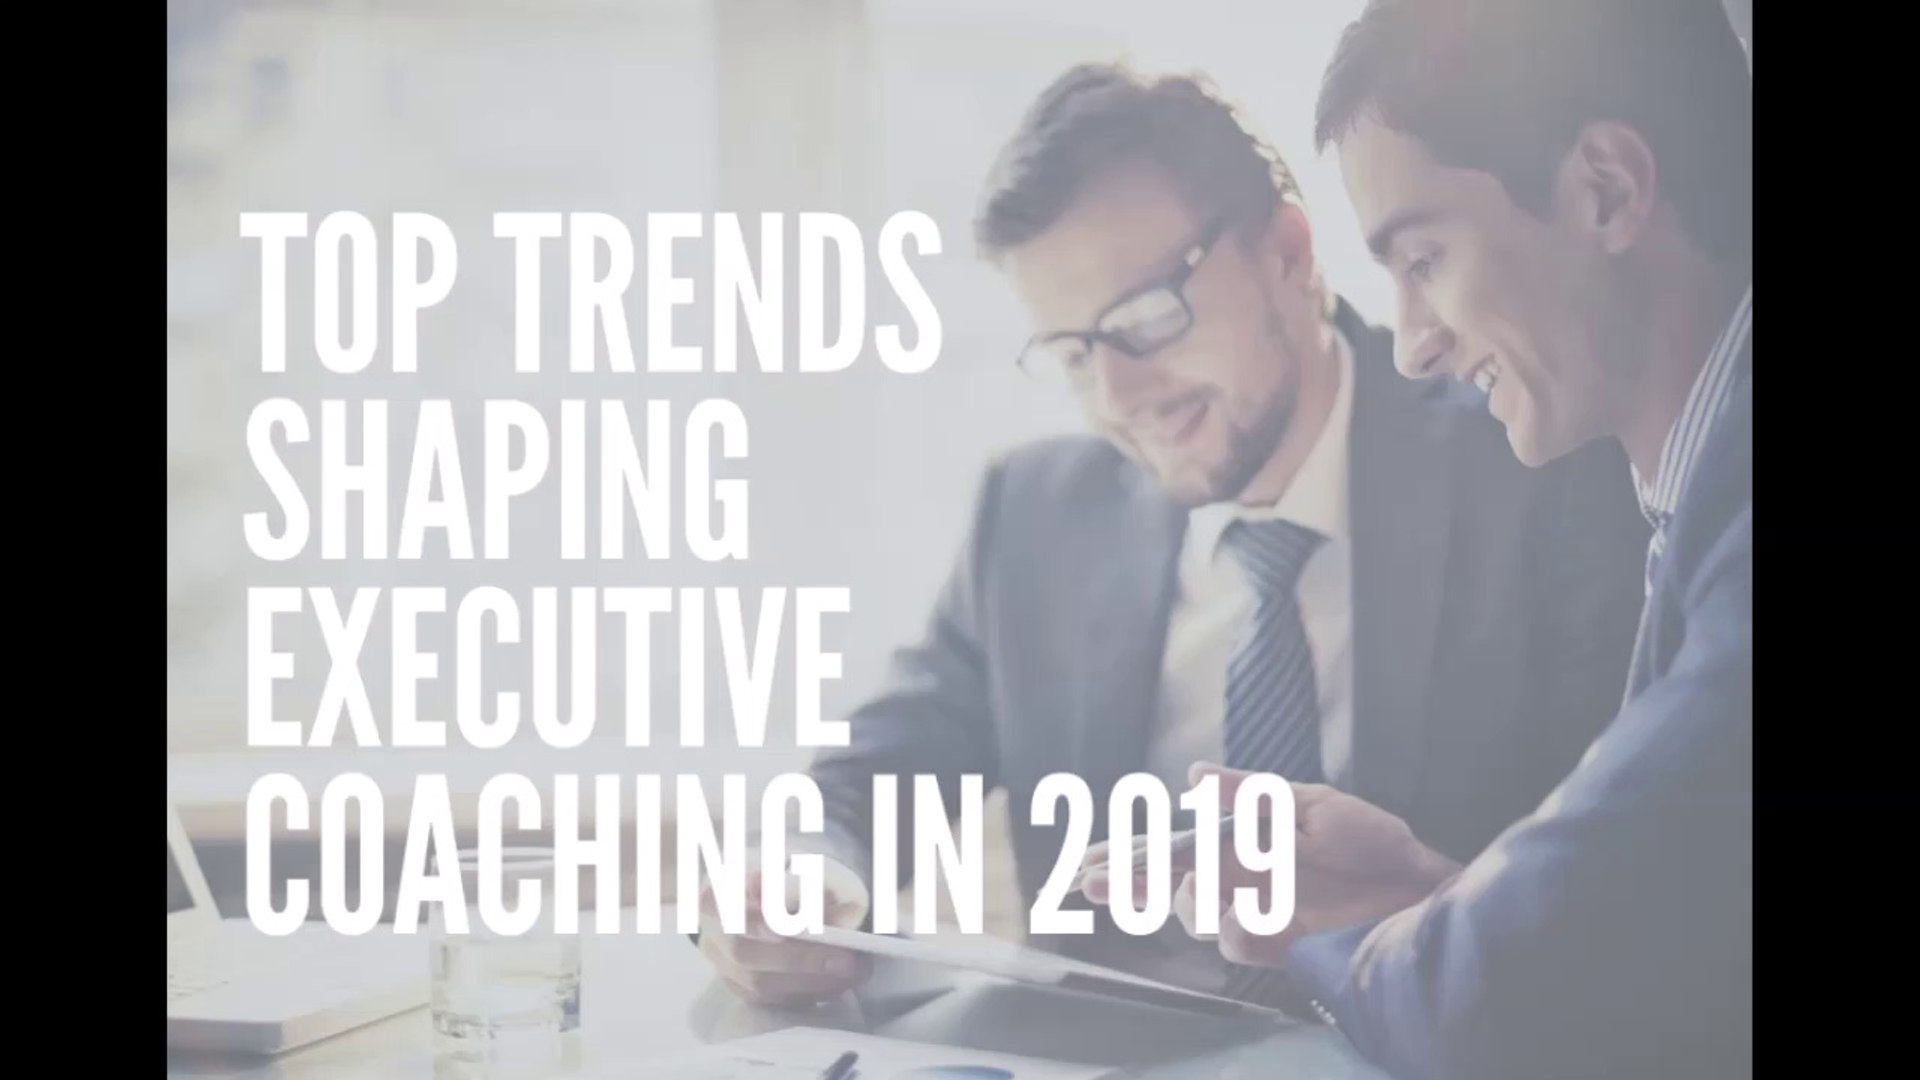 Top Trends Shaping Executive Coaching in 2019